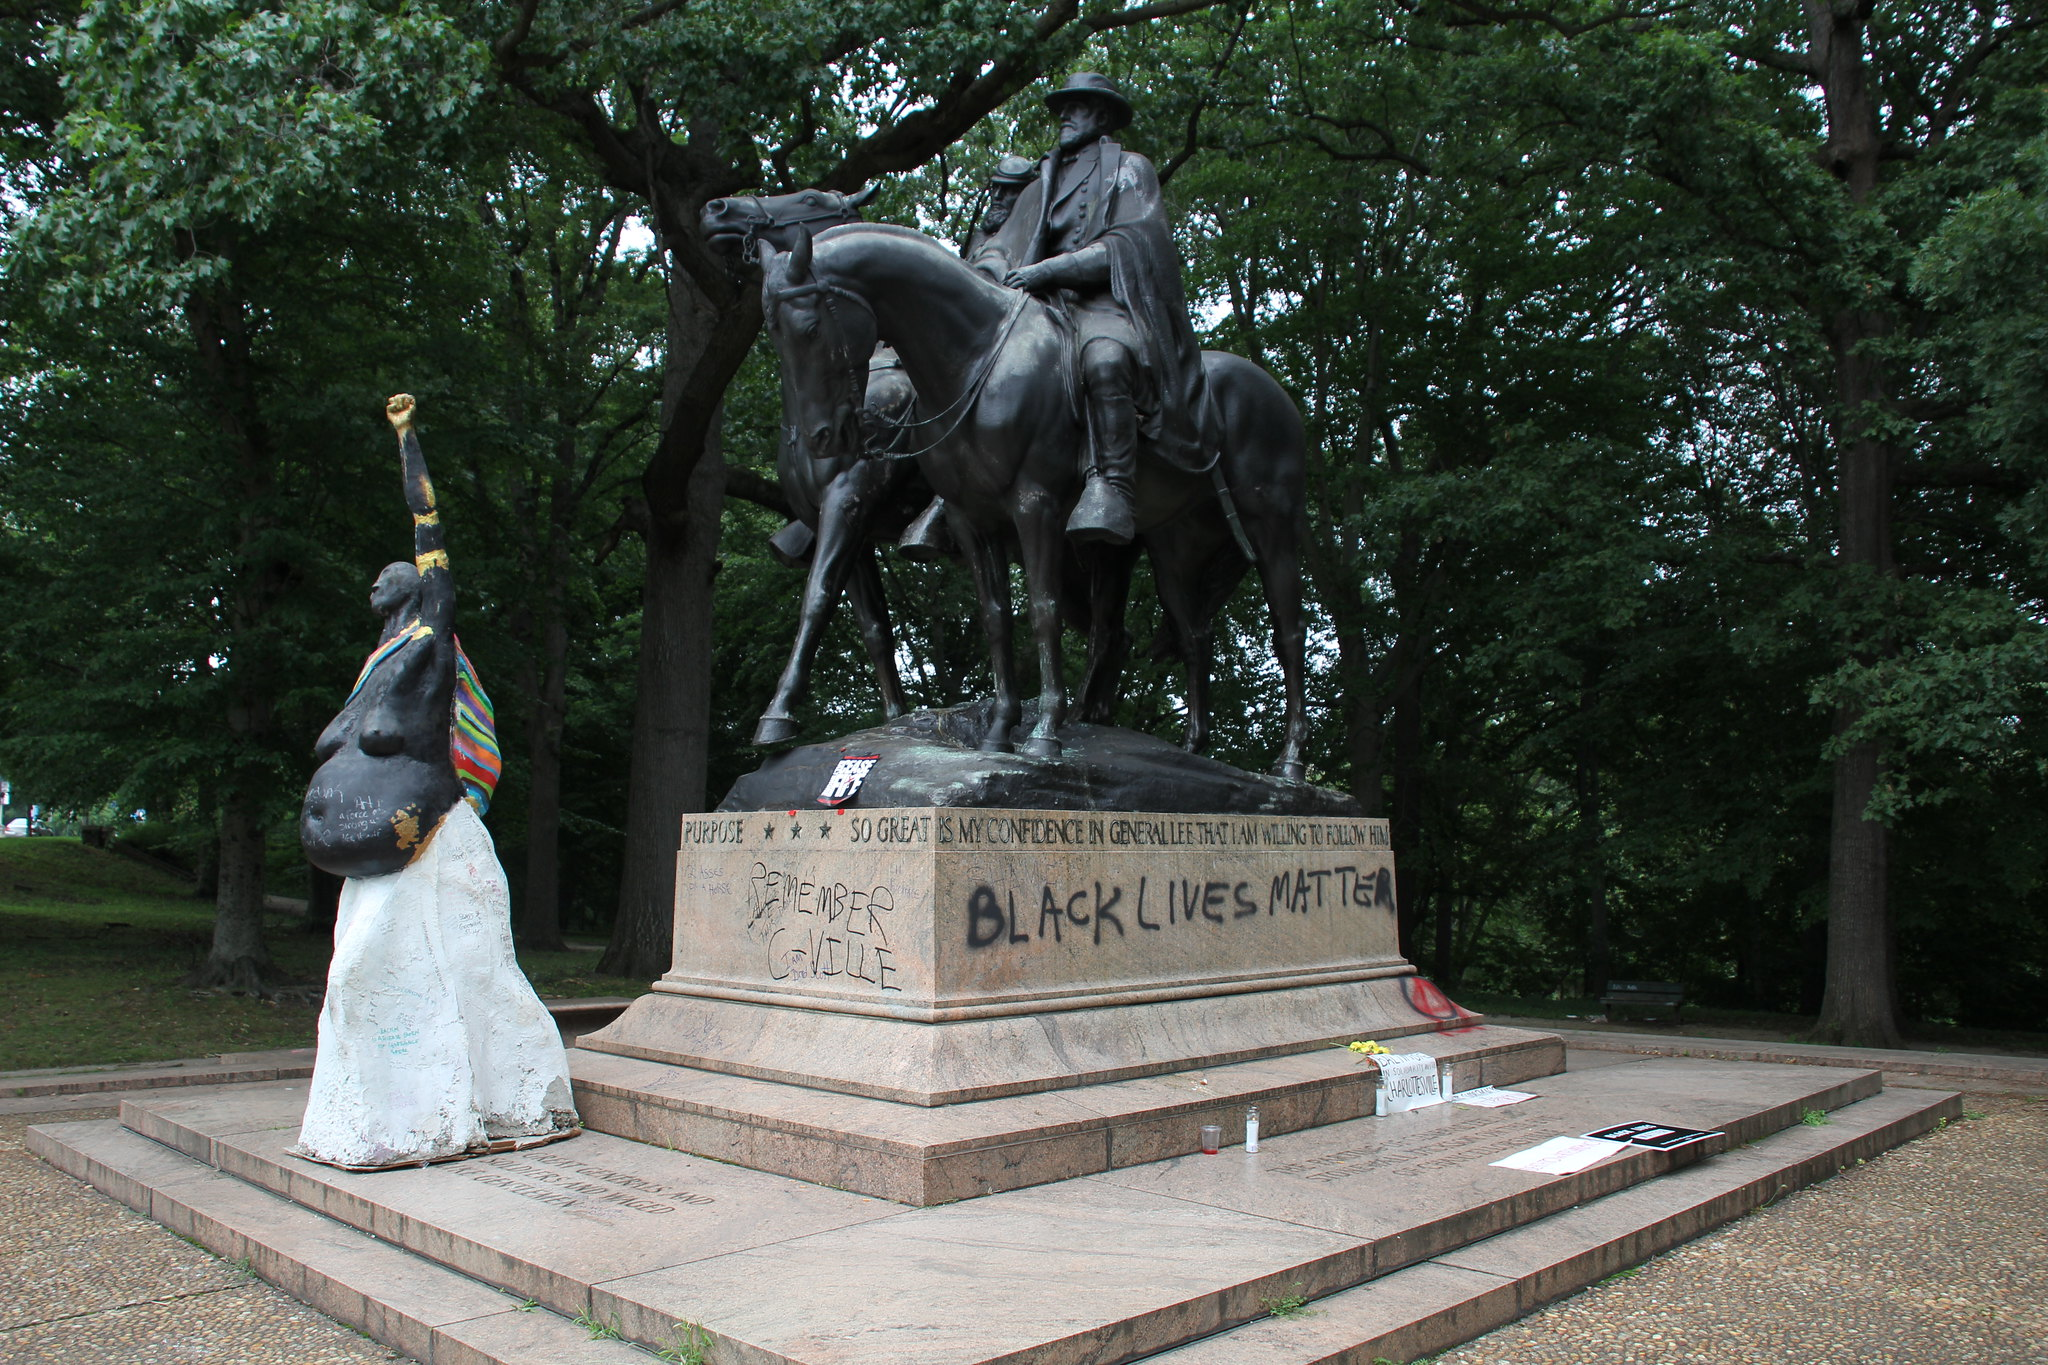 More Confederate Statues Need to Come Down